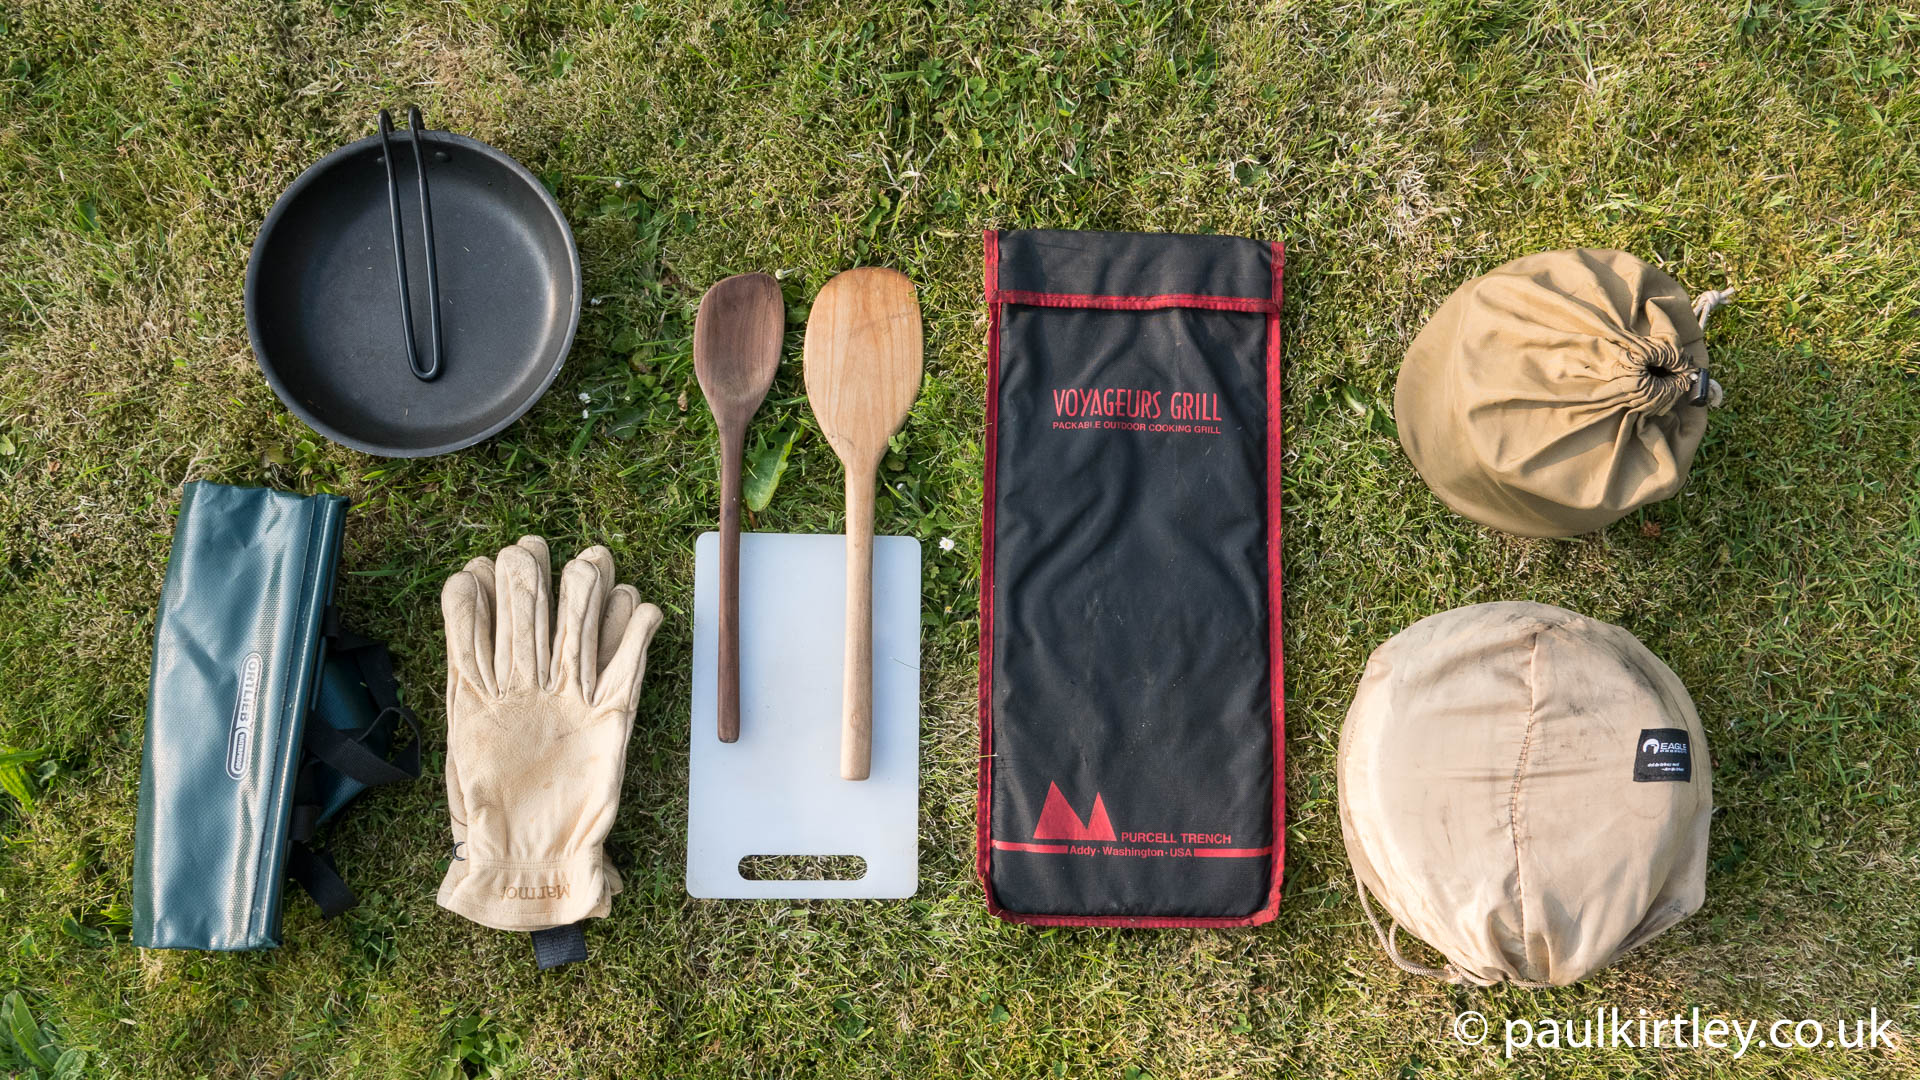 Paul Kirtley's Canoe Camping Cookset